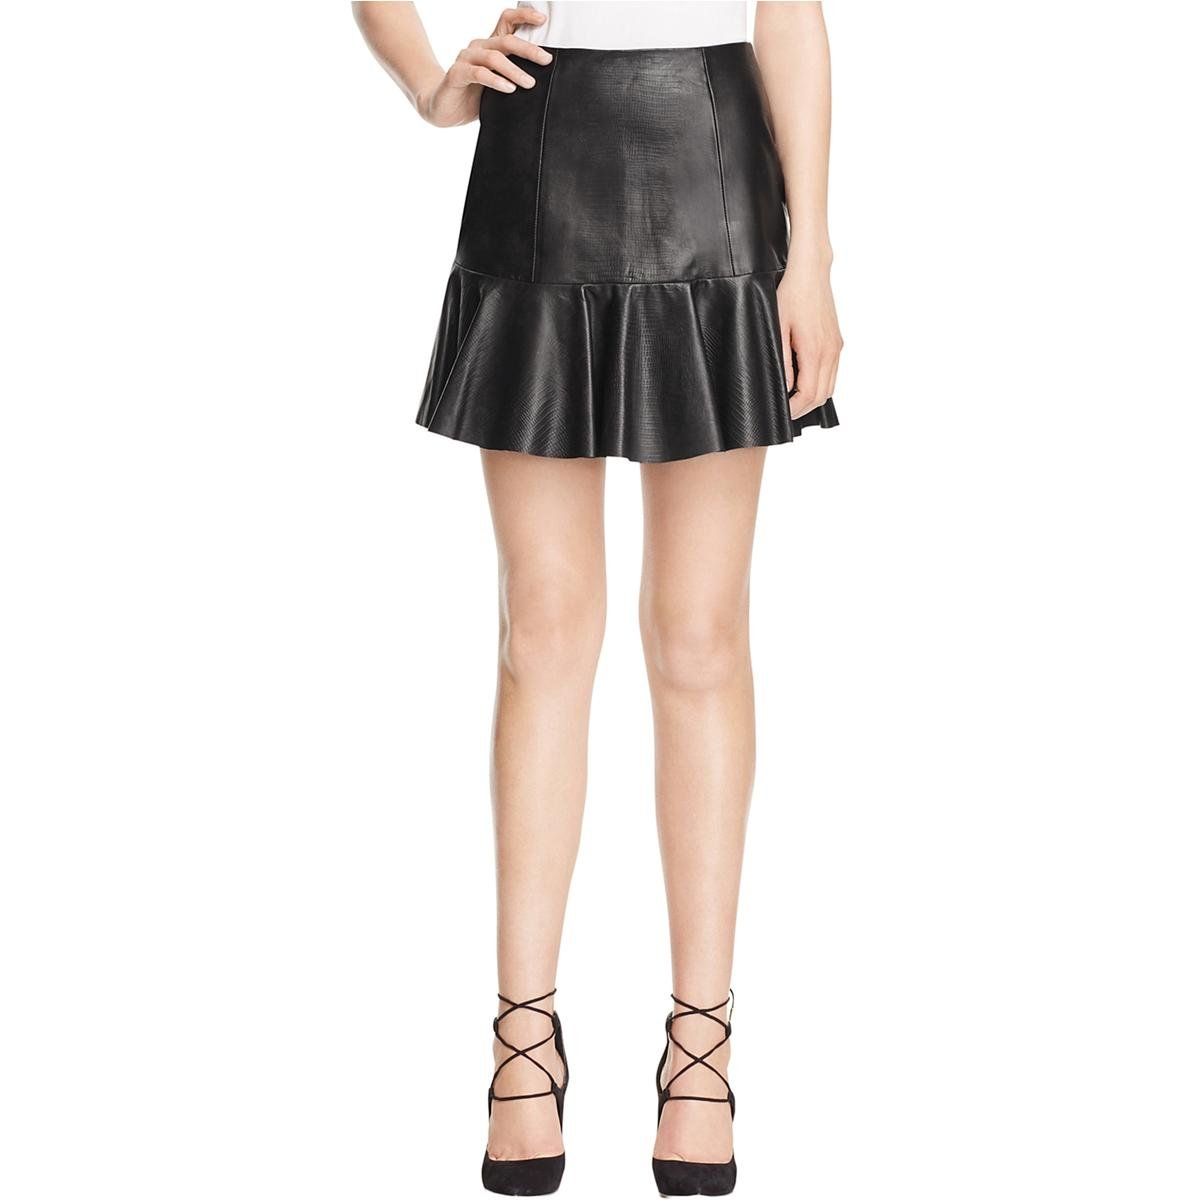 Rebecca Taylor Womens Faux Leather Above Knee Flare Skirt Black 6 by Rebecca Taylor (Image #1)